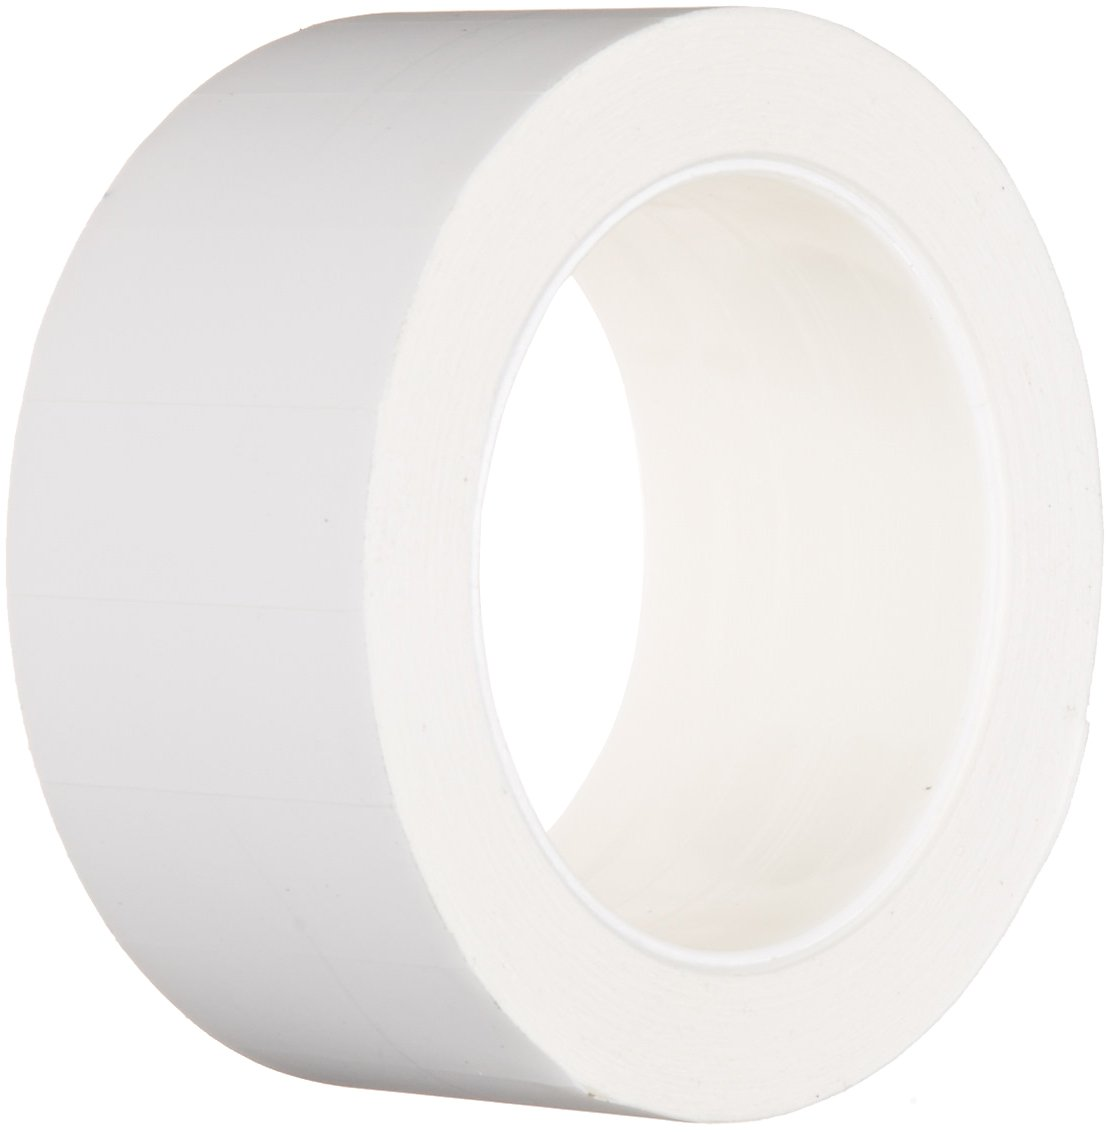 Diversified Biotech TTLW-1000 Tough-Tags Label, Use with 1.5ml Tube, 0.50' Width x 1.28' Length, White (Roll of 1000) 0.50 Width x 1.28 Length Thomas Scientific